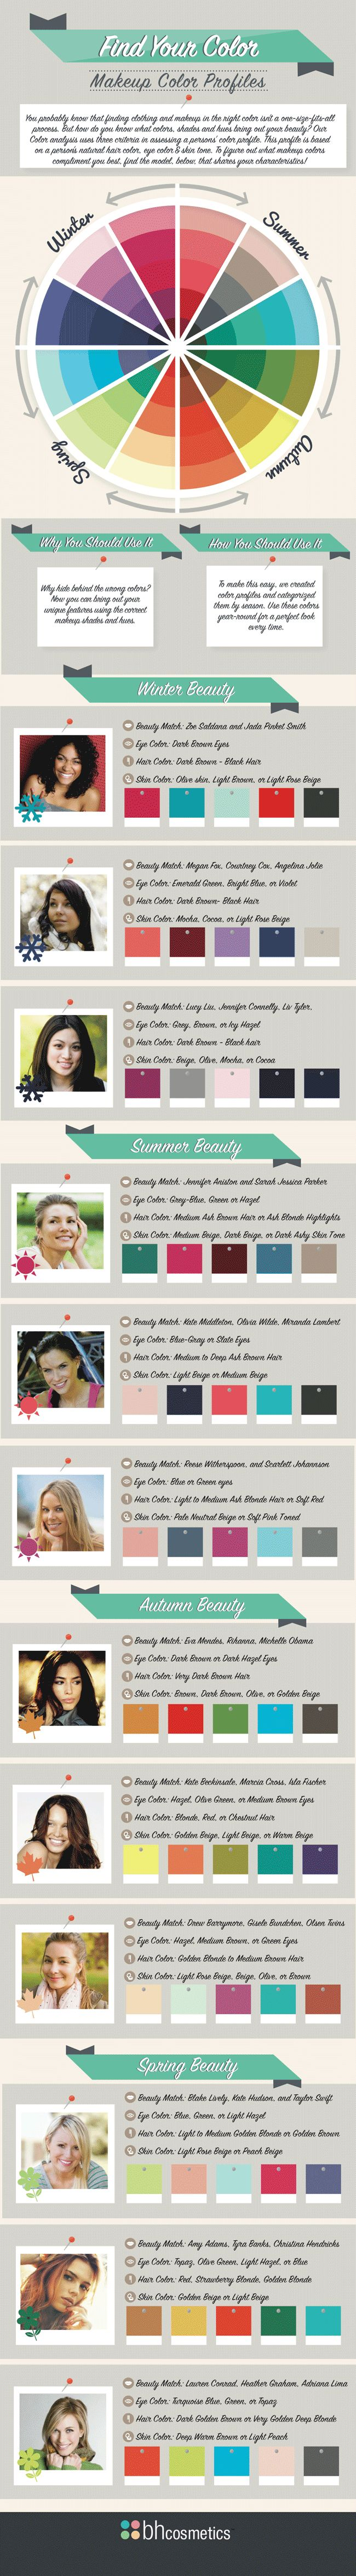 Find Your Makeup Color Profiles. This is beyond helpful!!! I never know what colors to get my nails painted.